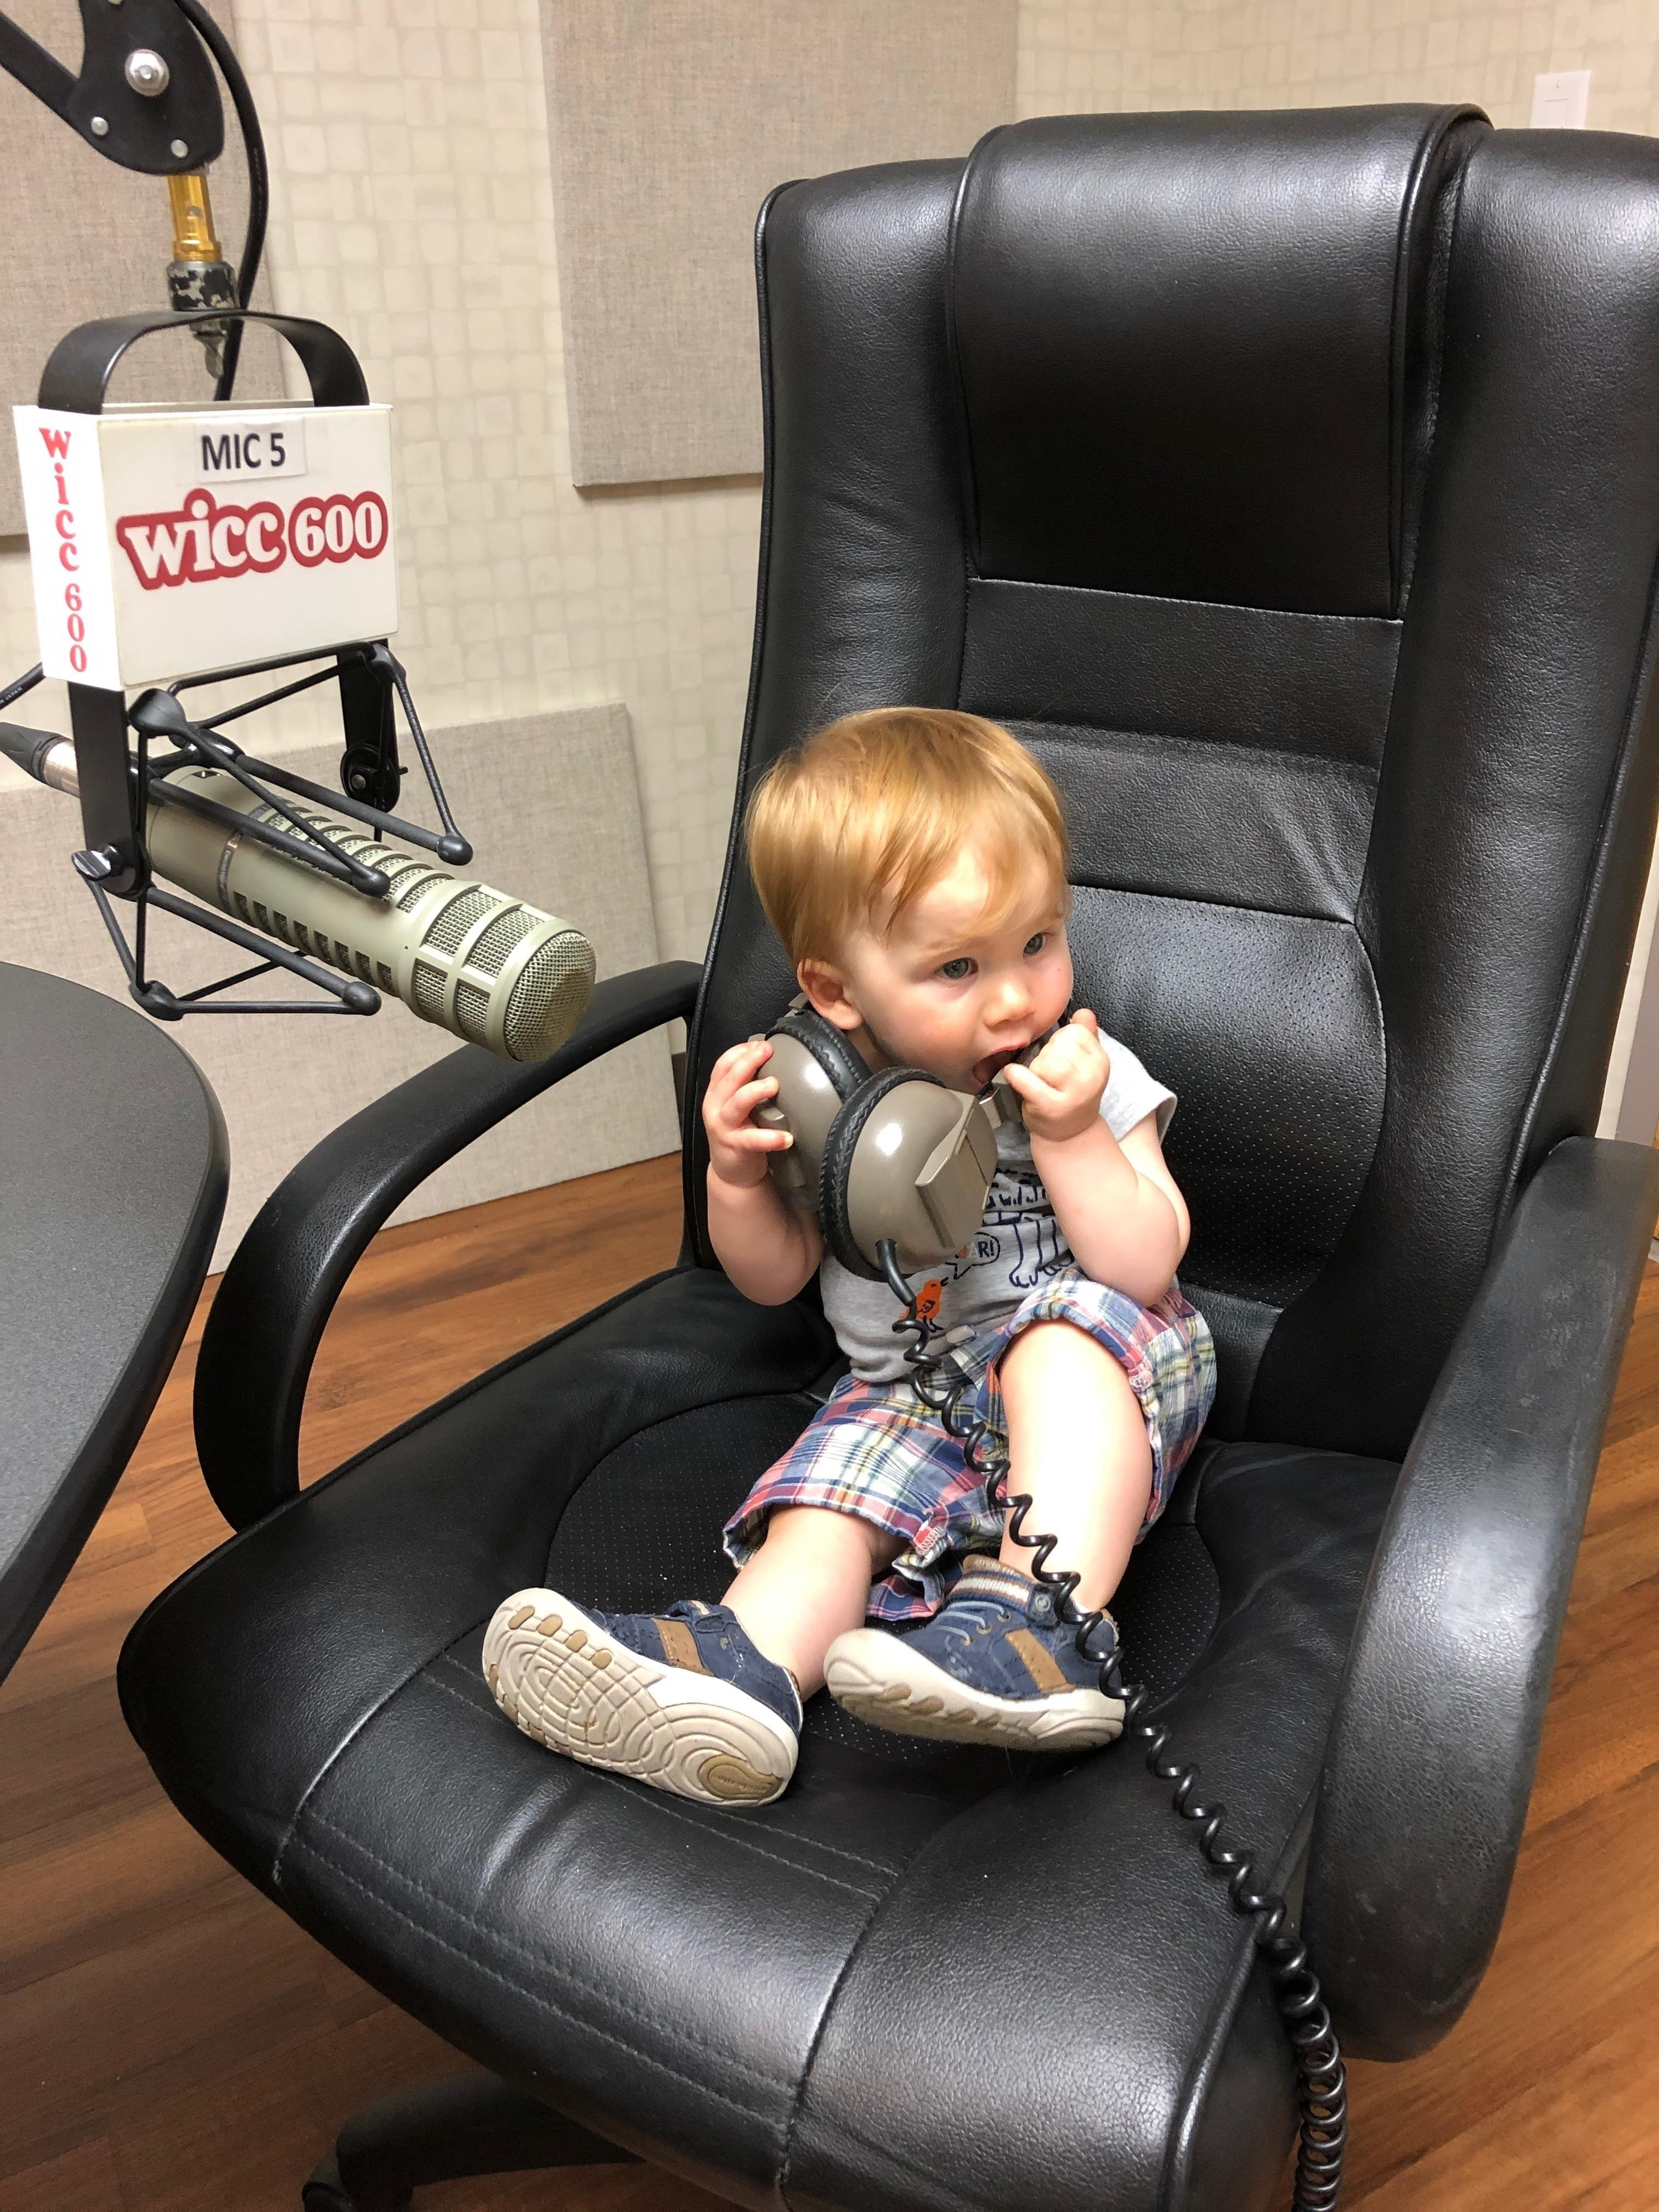 Connecticut Today with Paul Pacelli: The Kid's First Day in Radio